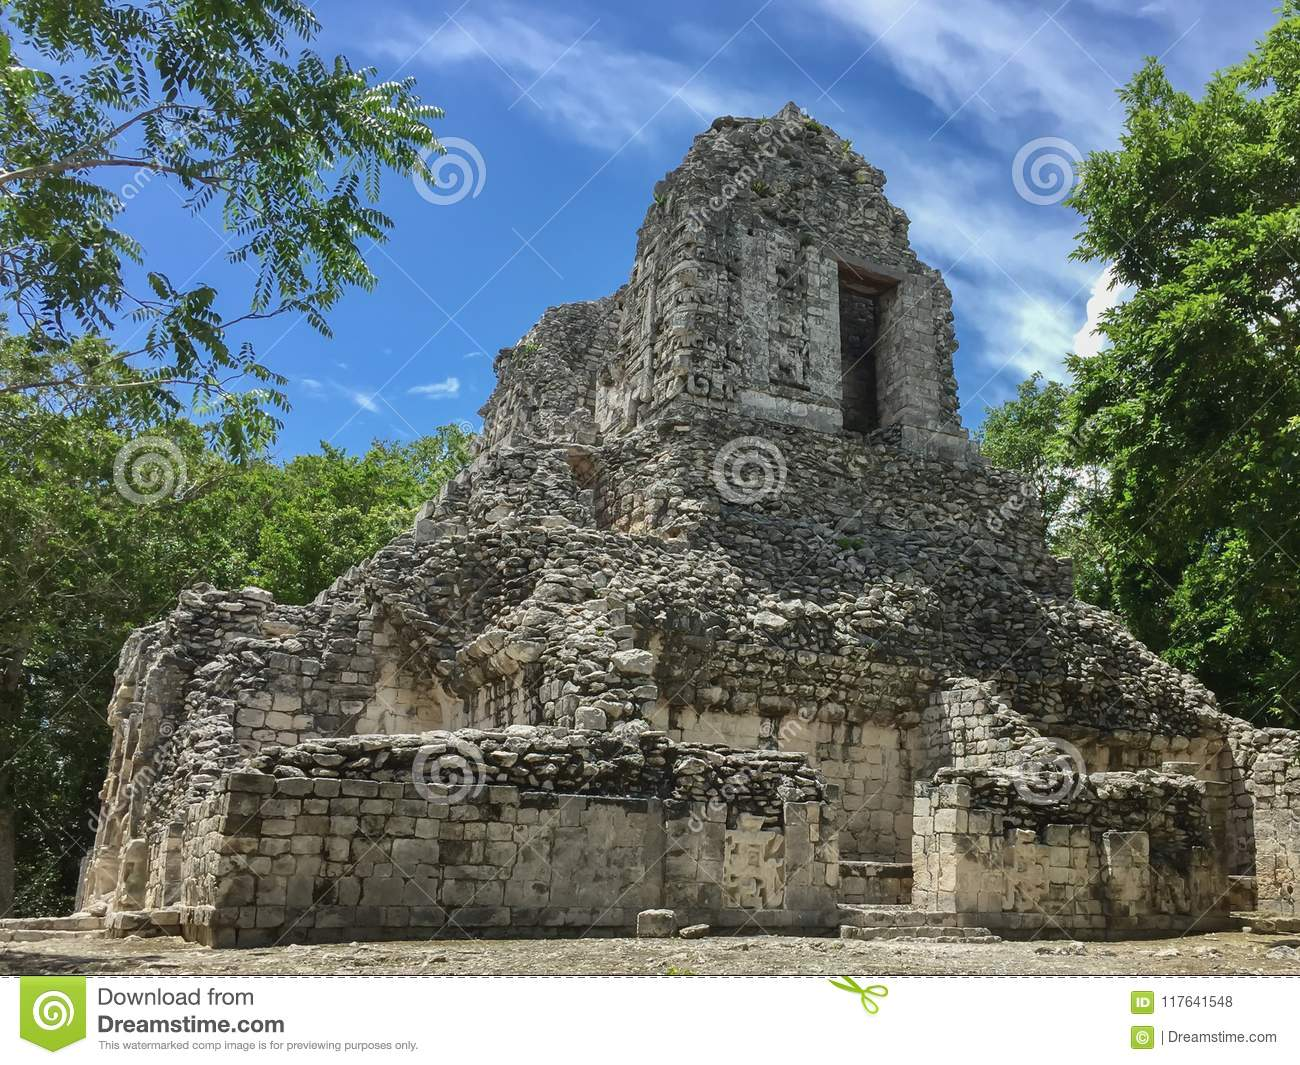 Ancient Maya ruin in Xpujil, Campeche, Mexico sitting in the middle of the jungle